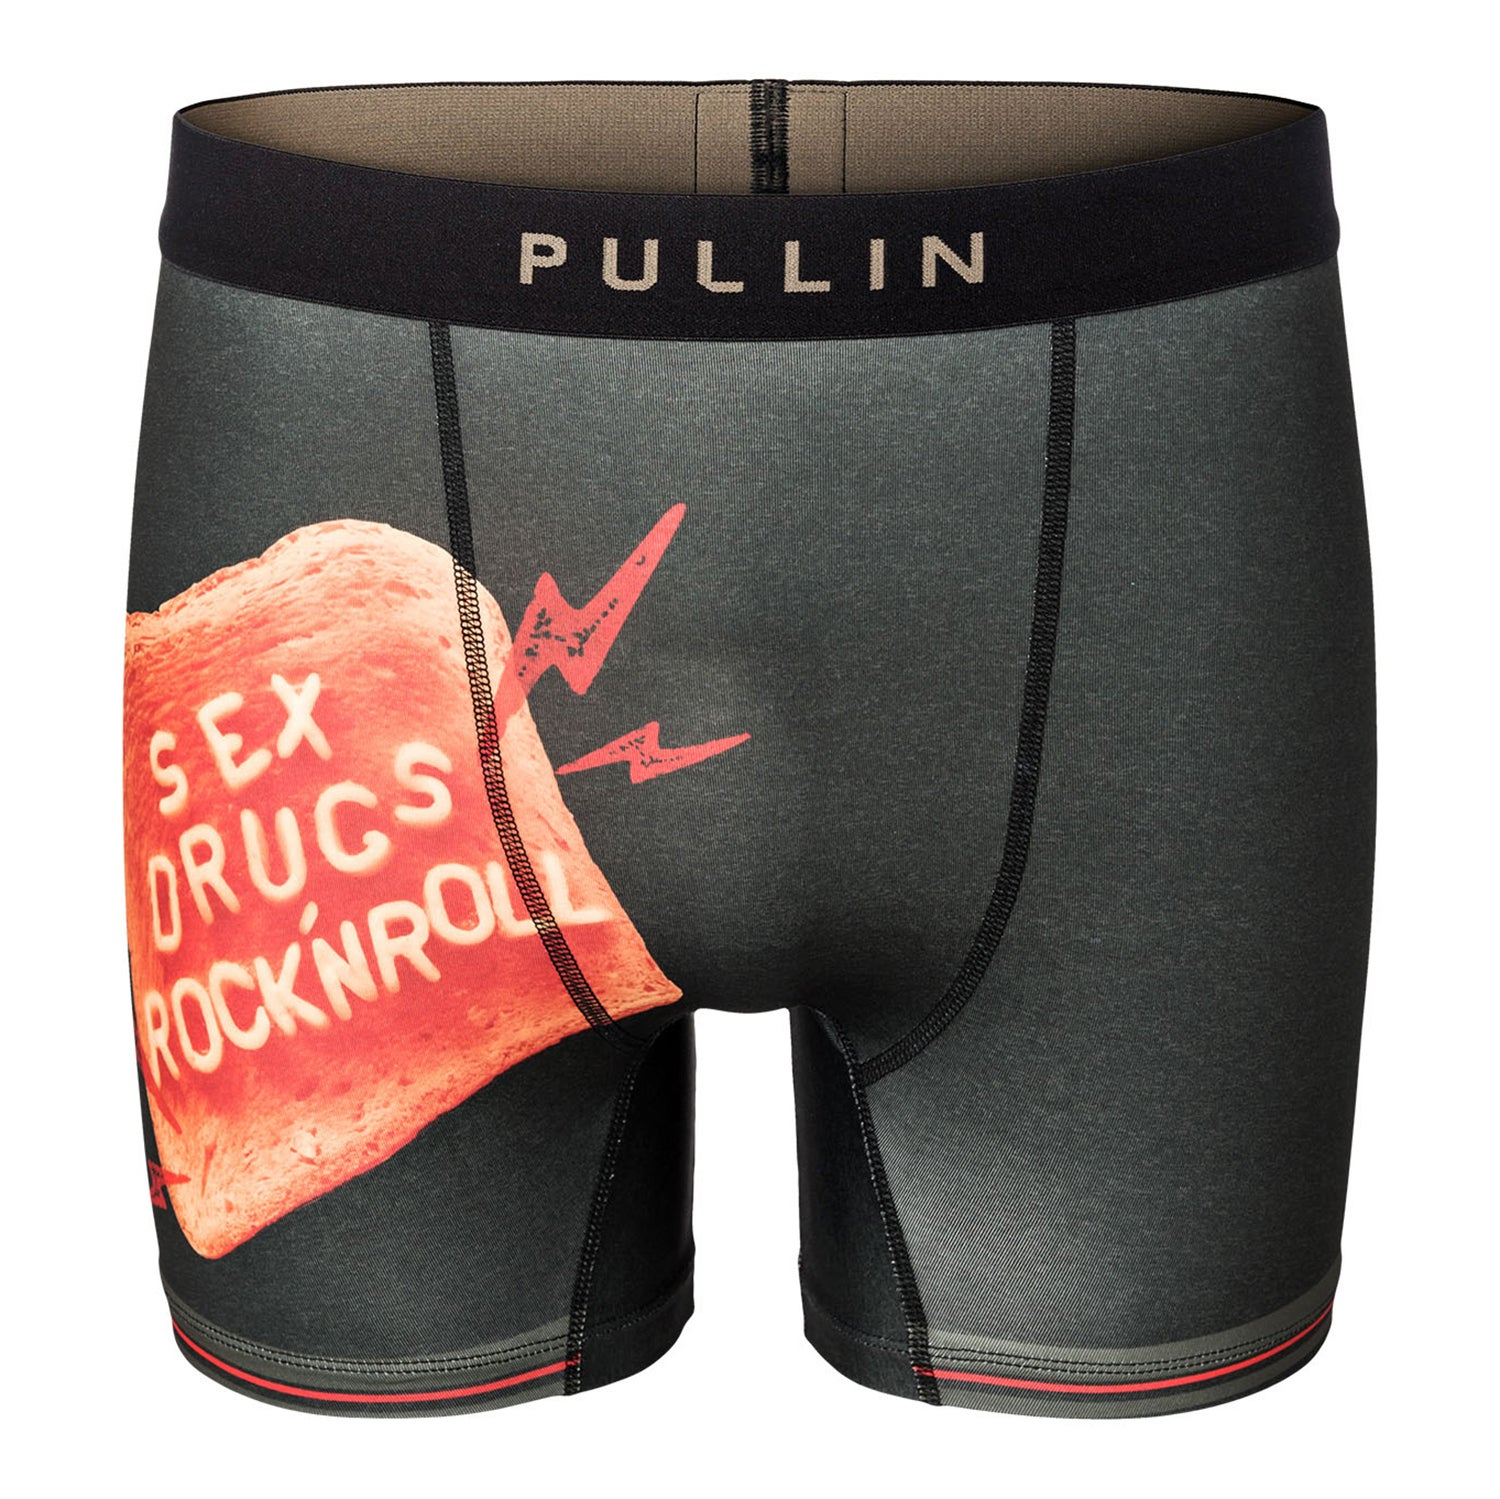 Pull-in Fashion 2 Boxer Shorts - Zeppelin